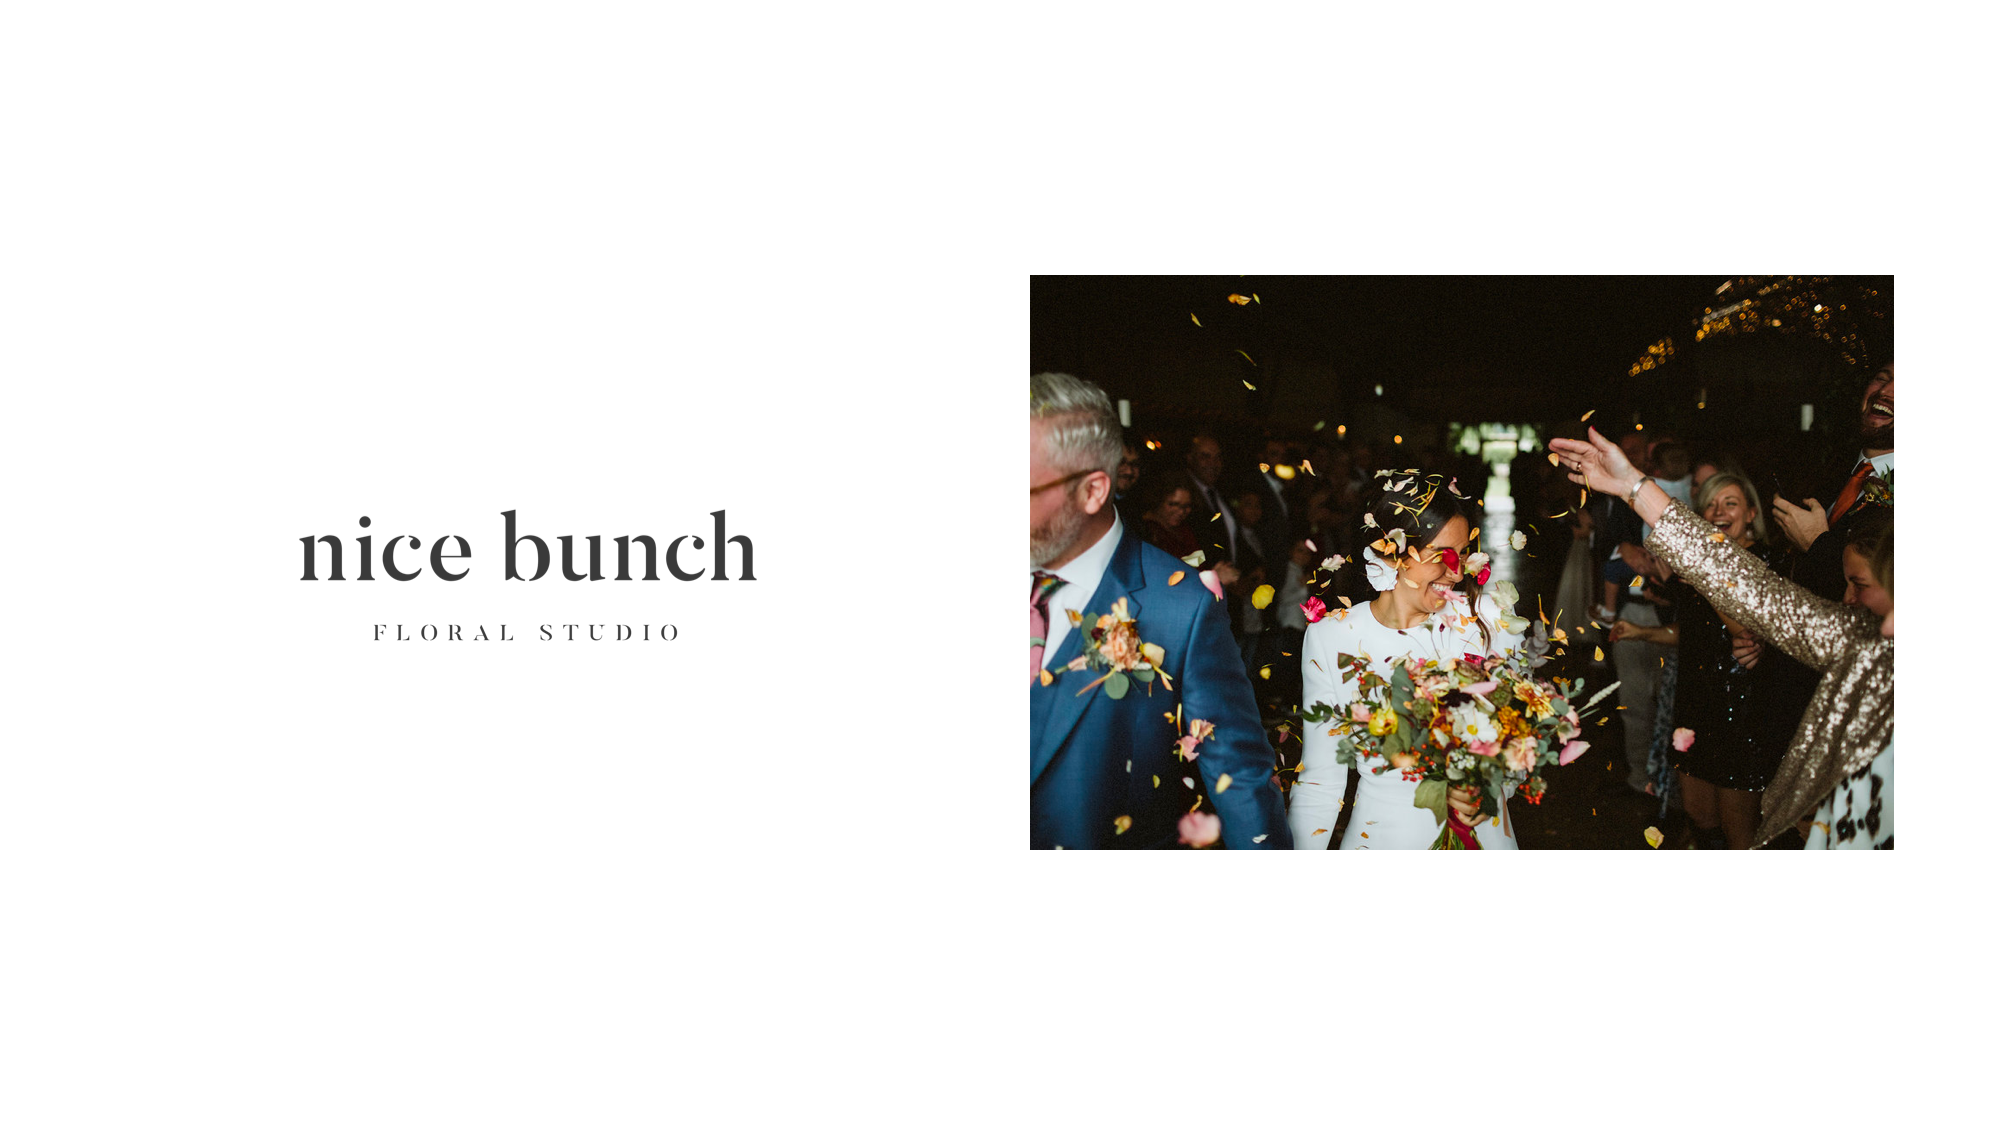 Nicebunch flowers sula stonebarn cotswolds venue ethical british luxury confetti bouquet buttonhole